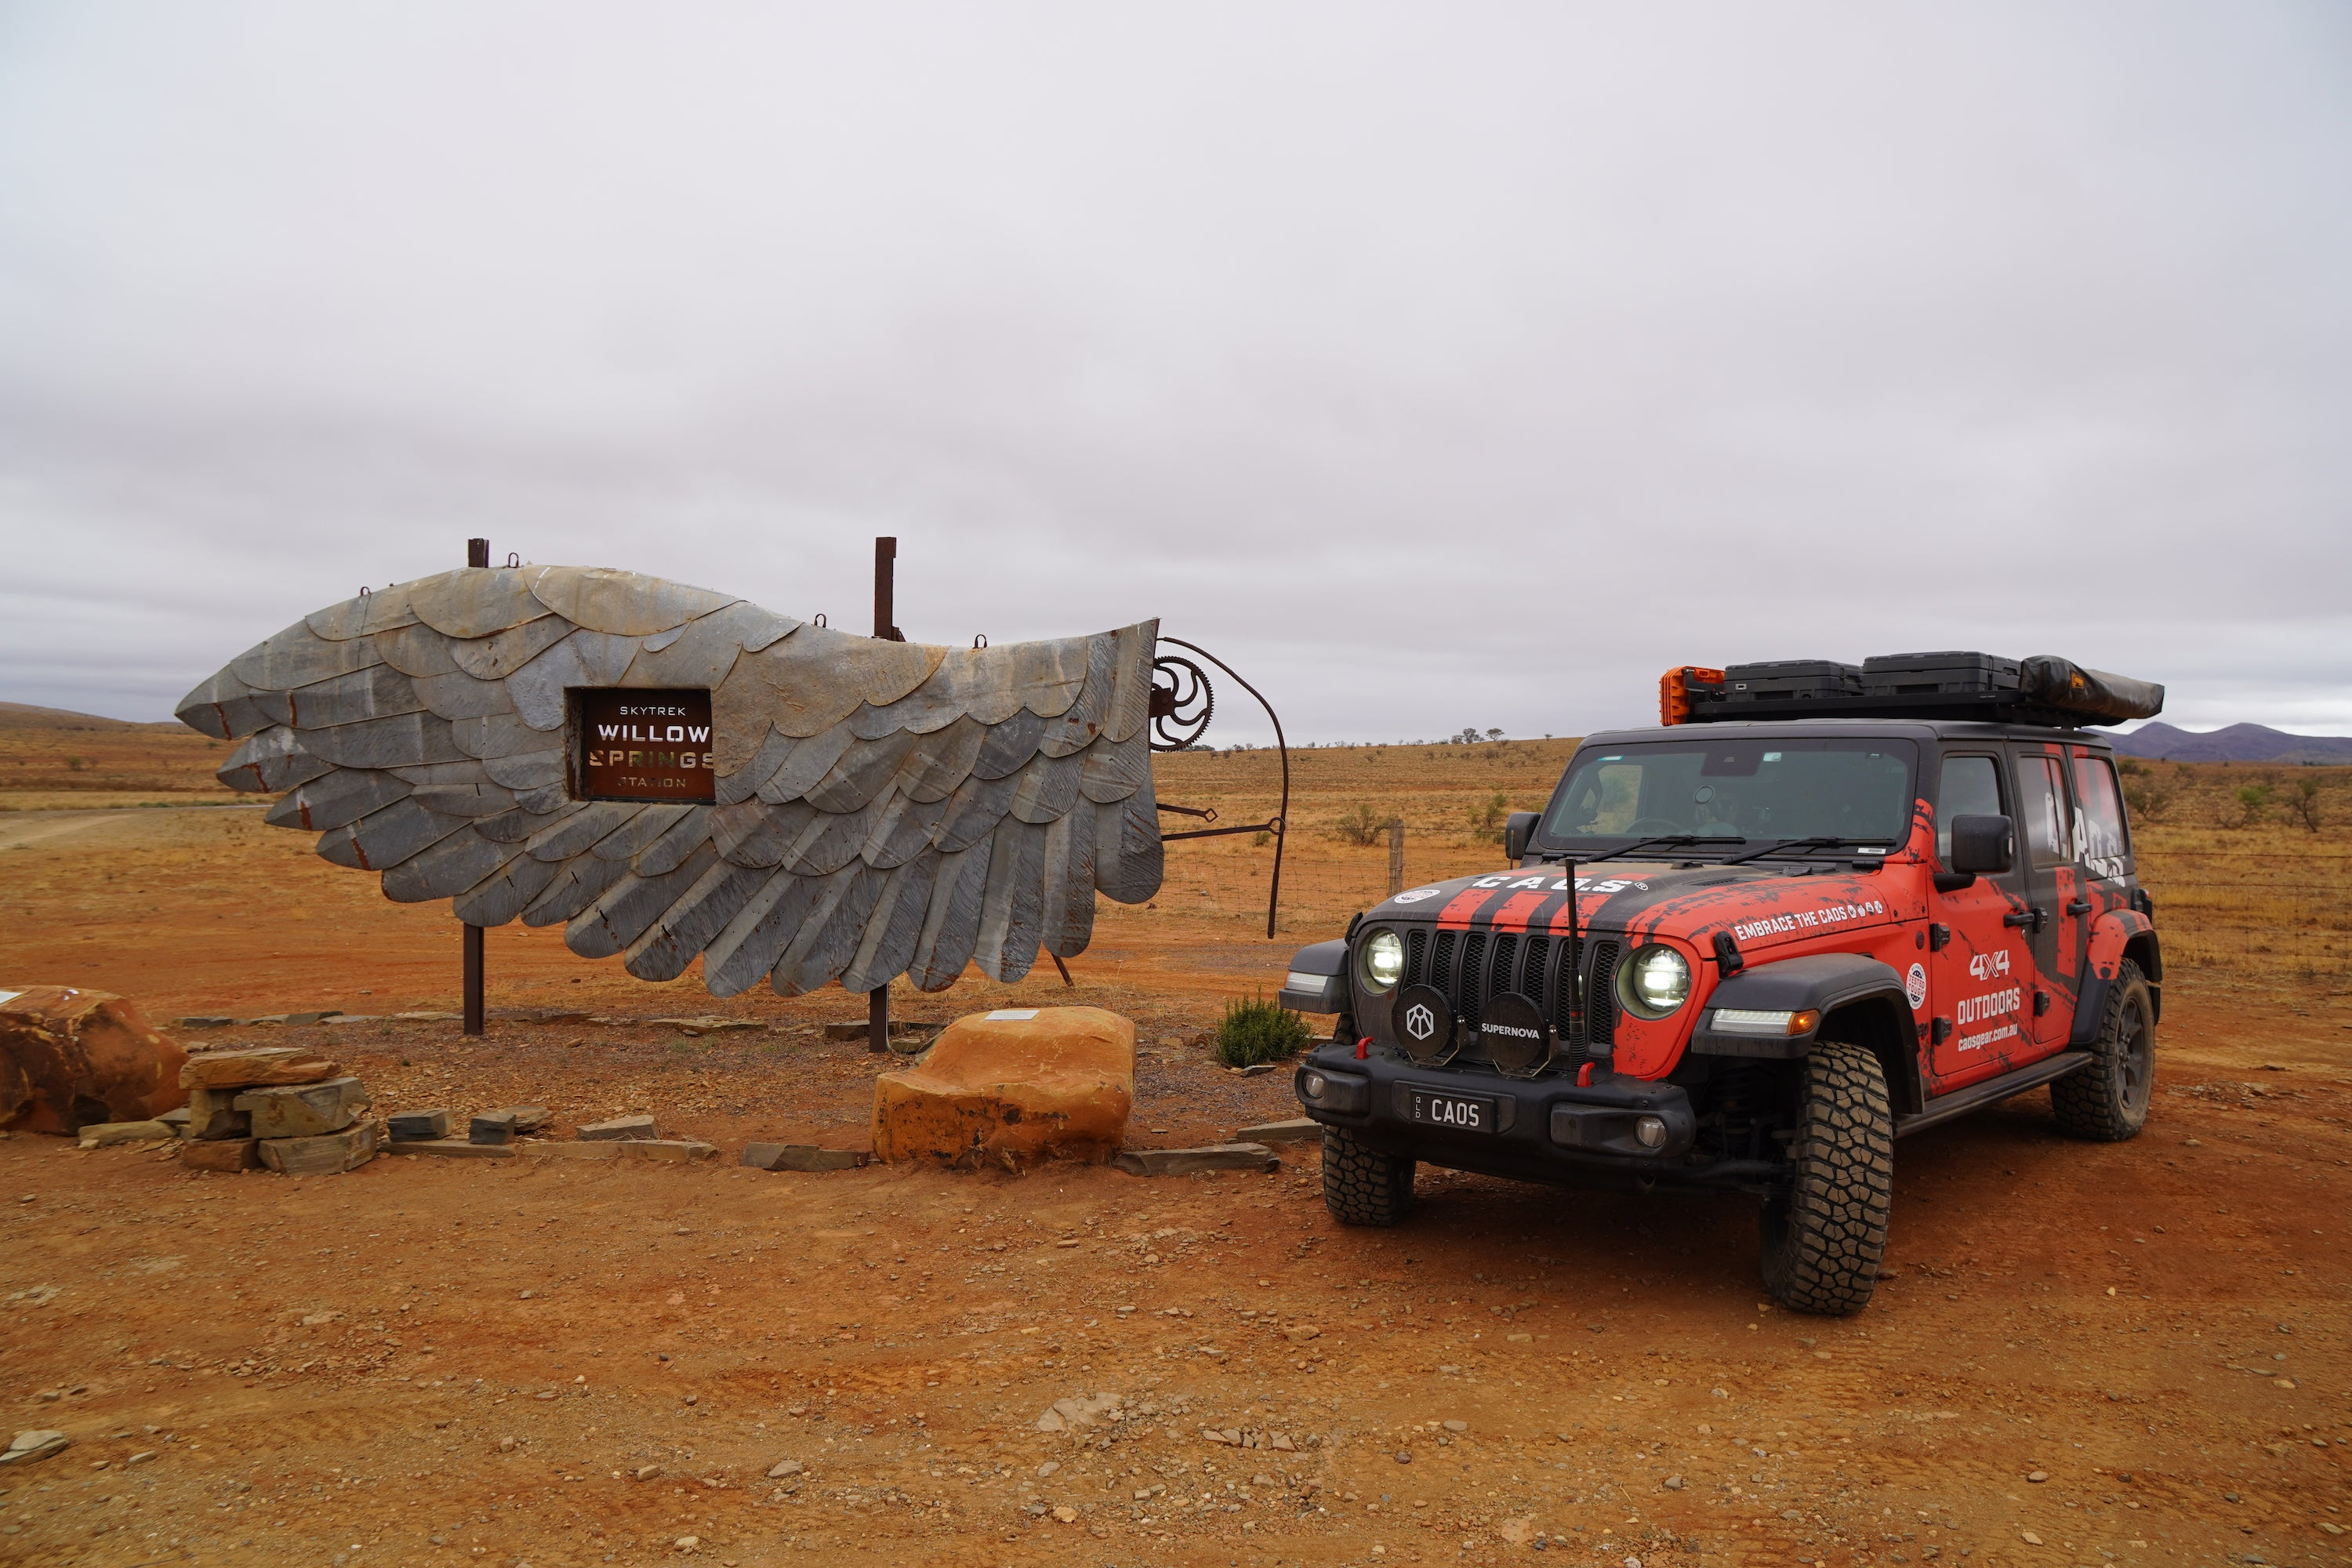 CAOS Jeep At Willow Springs Entrance Sign